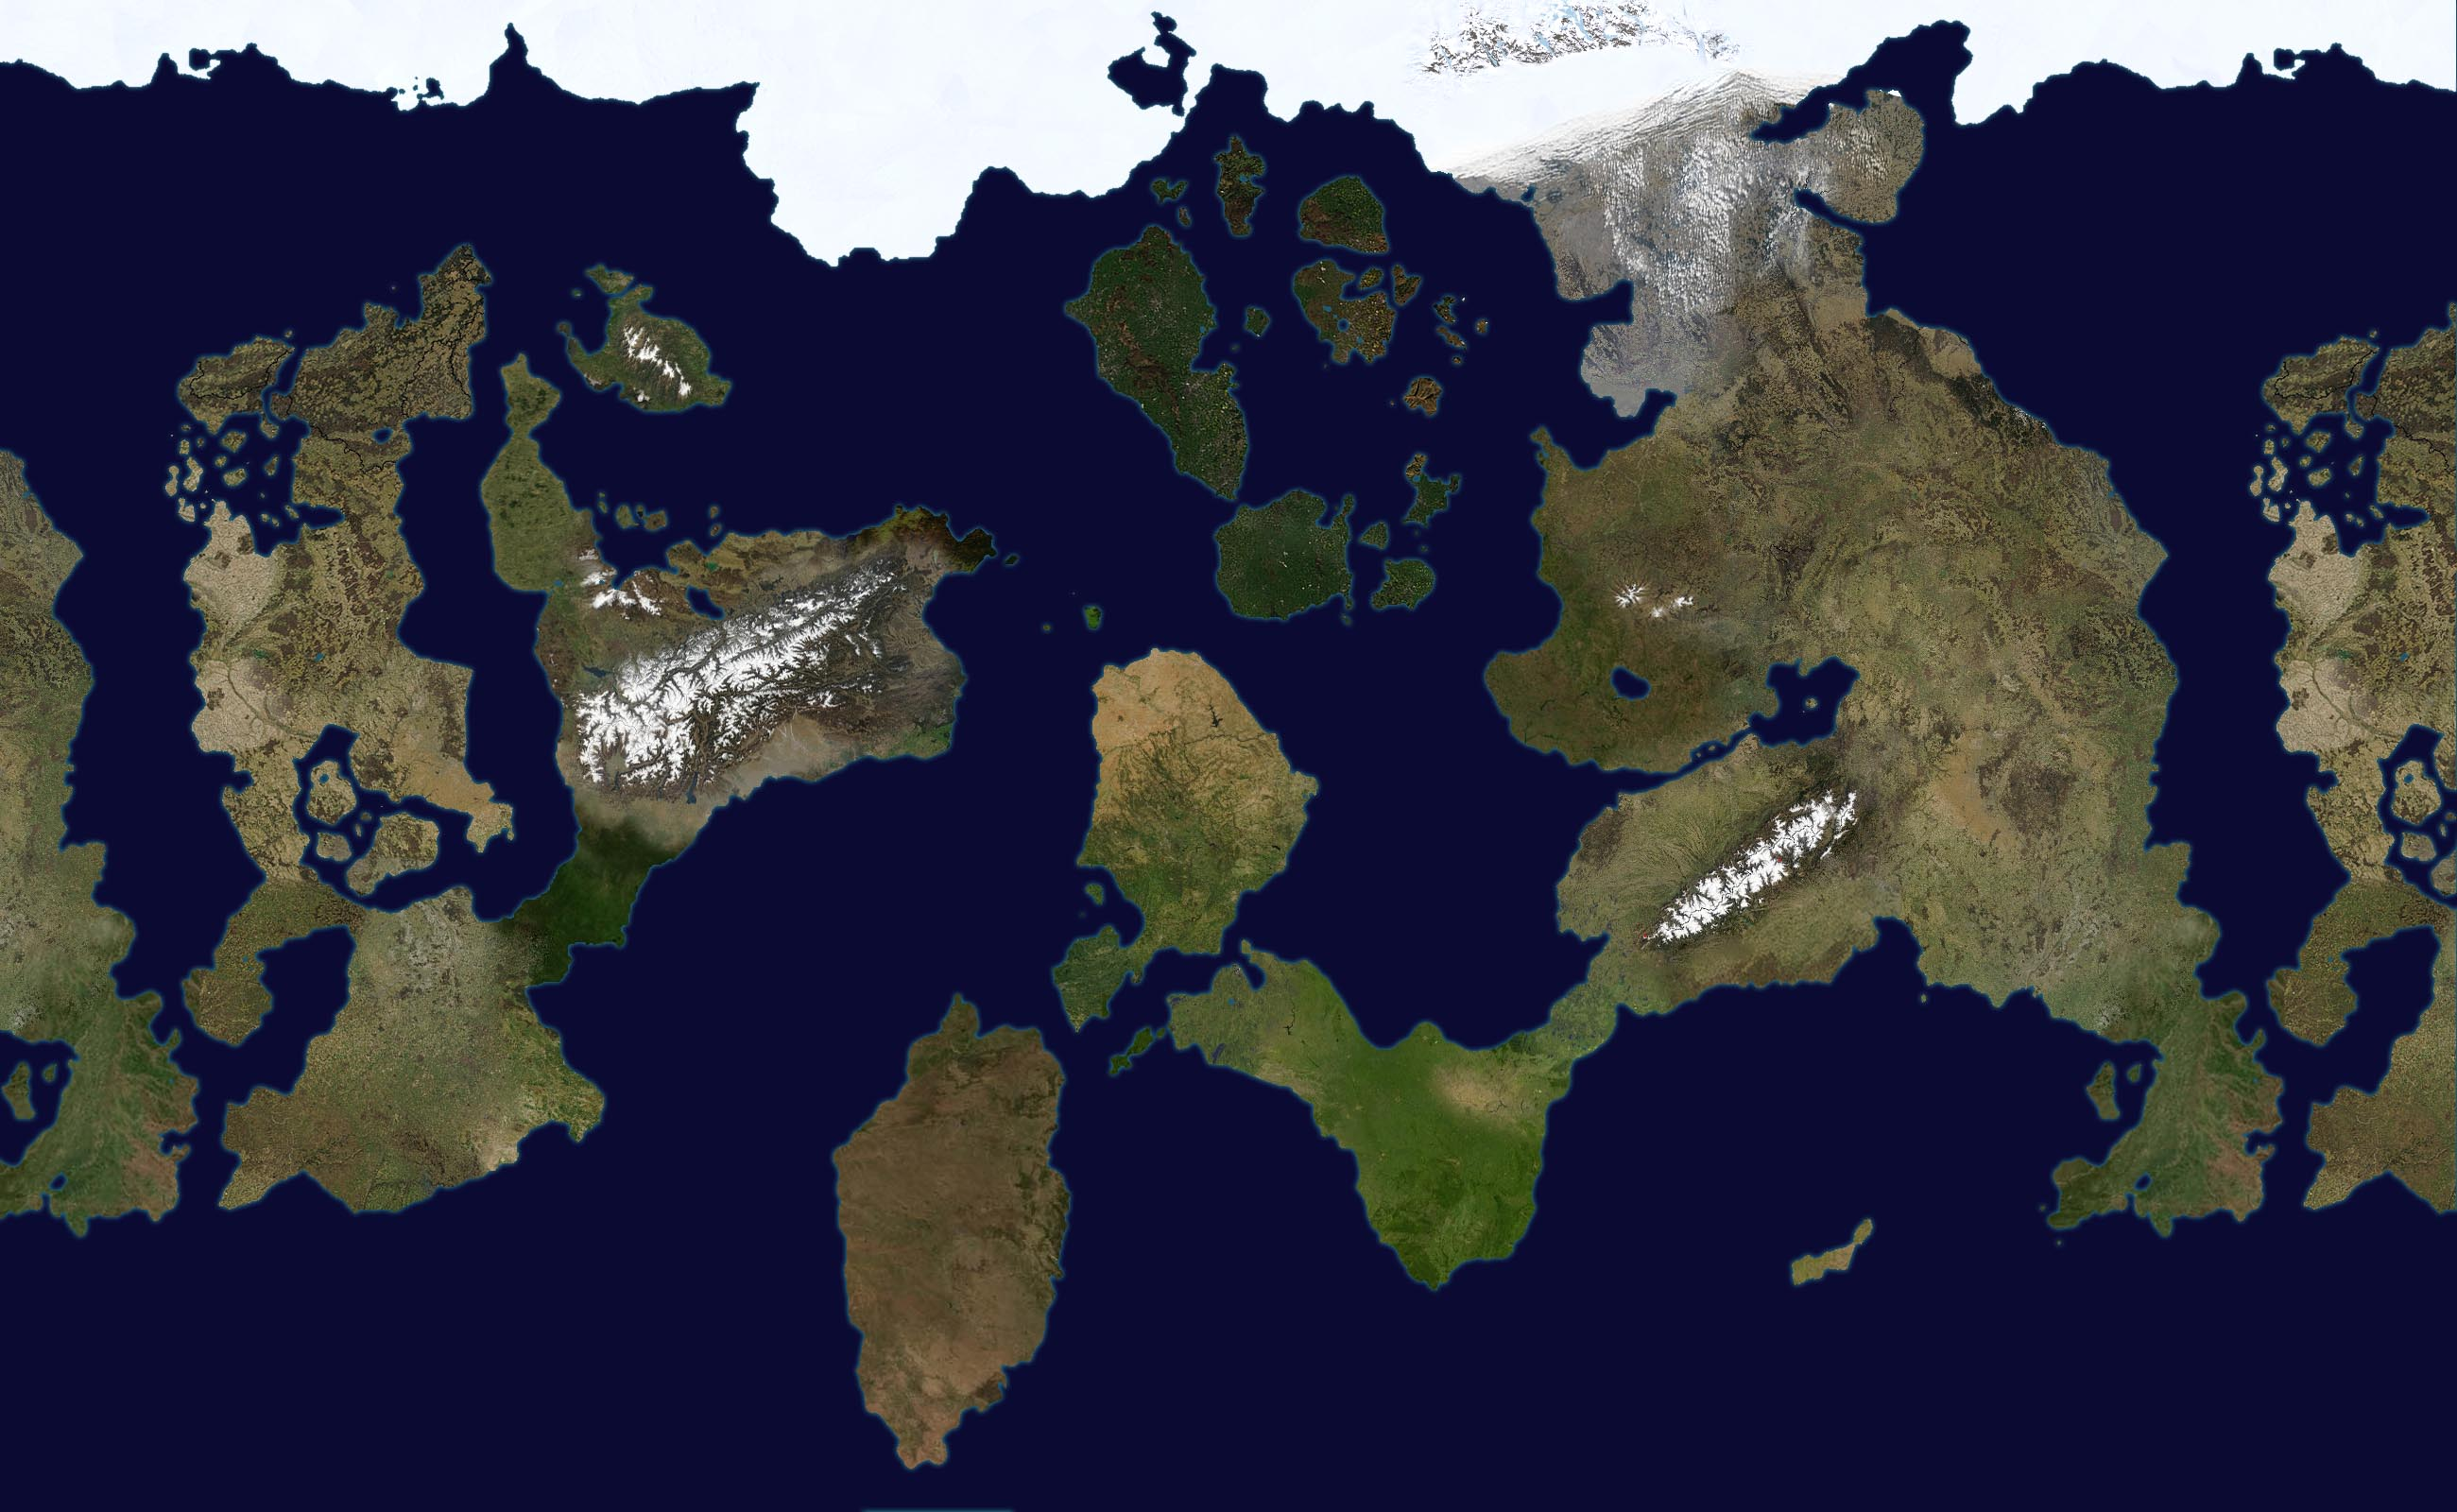 Fantasy world geographical map by sheep militia on deviantart fantasy world geographical map by sheep militia gumiabroncs Gallery